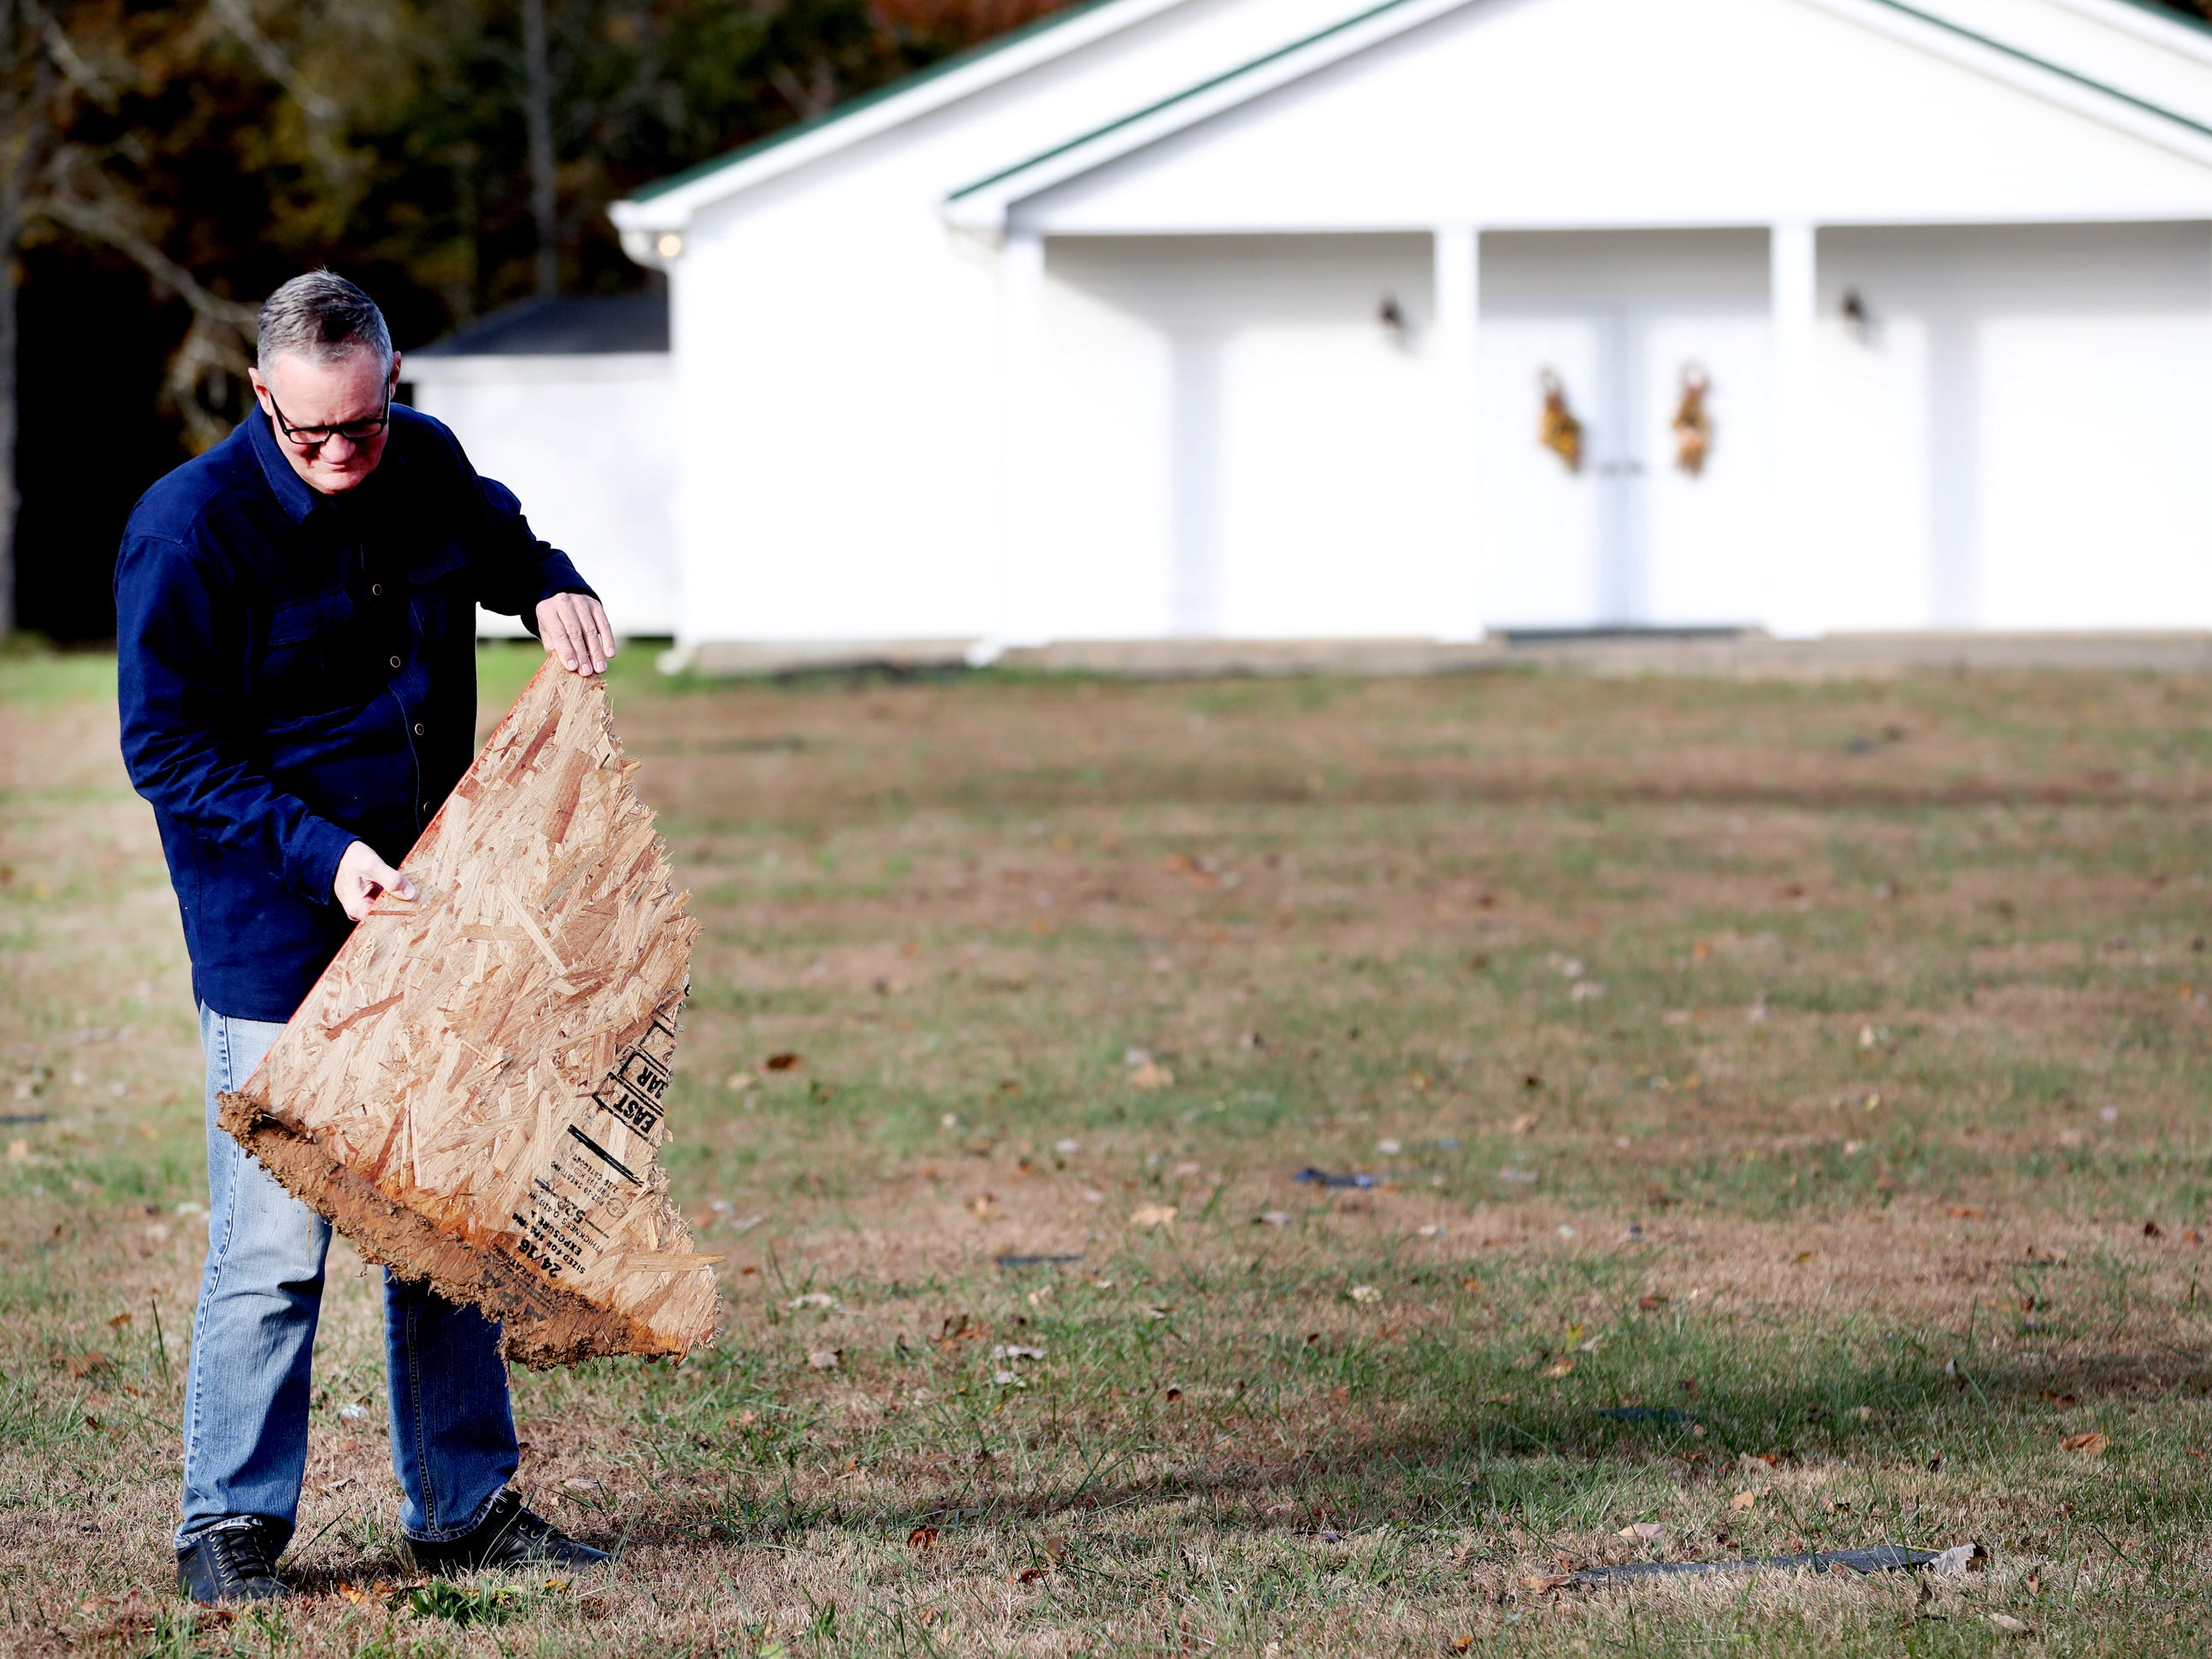 Billy Grimes Jr. pulls a piece of plywood out of the ground that was blown in the yard of the South Boros Pentecostals Church by a tornado that occurred  overnight, on Rock Springs Midland Road in Christiana, Tenn. on Tuesday, Nov. 6, 2018.